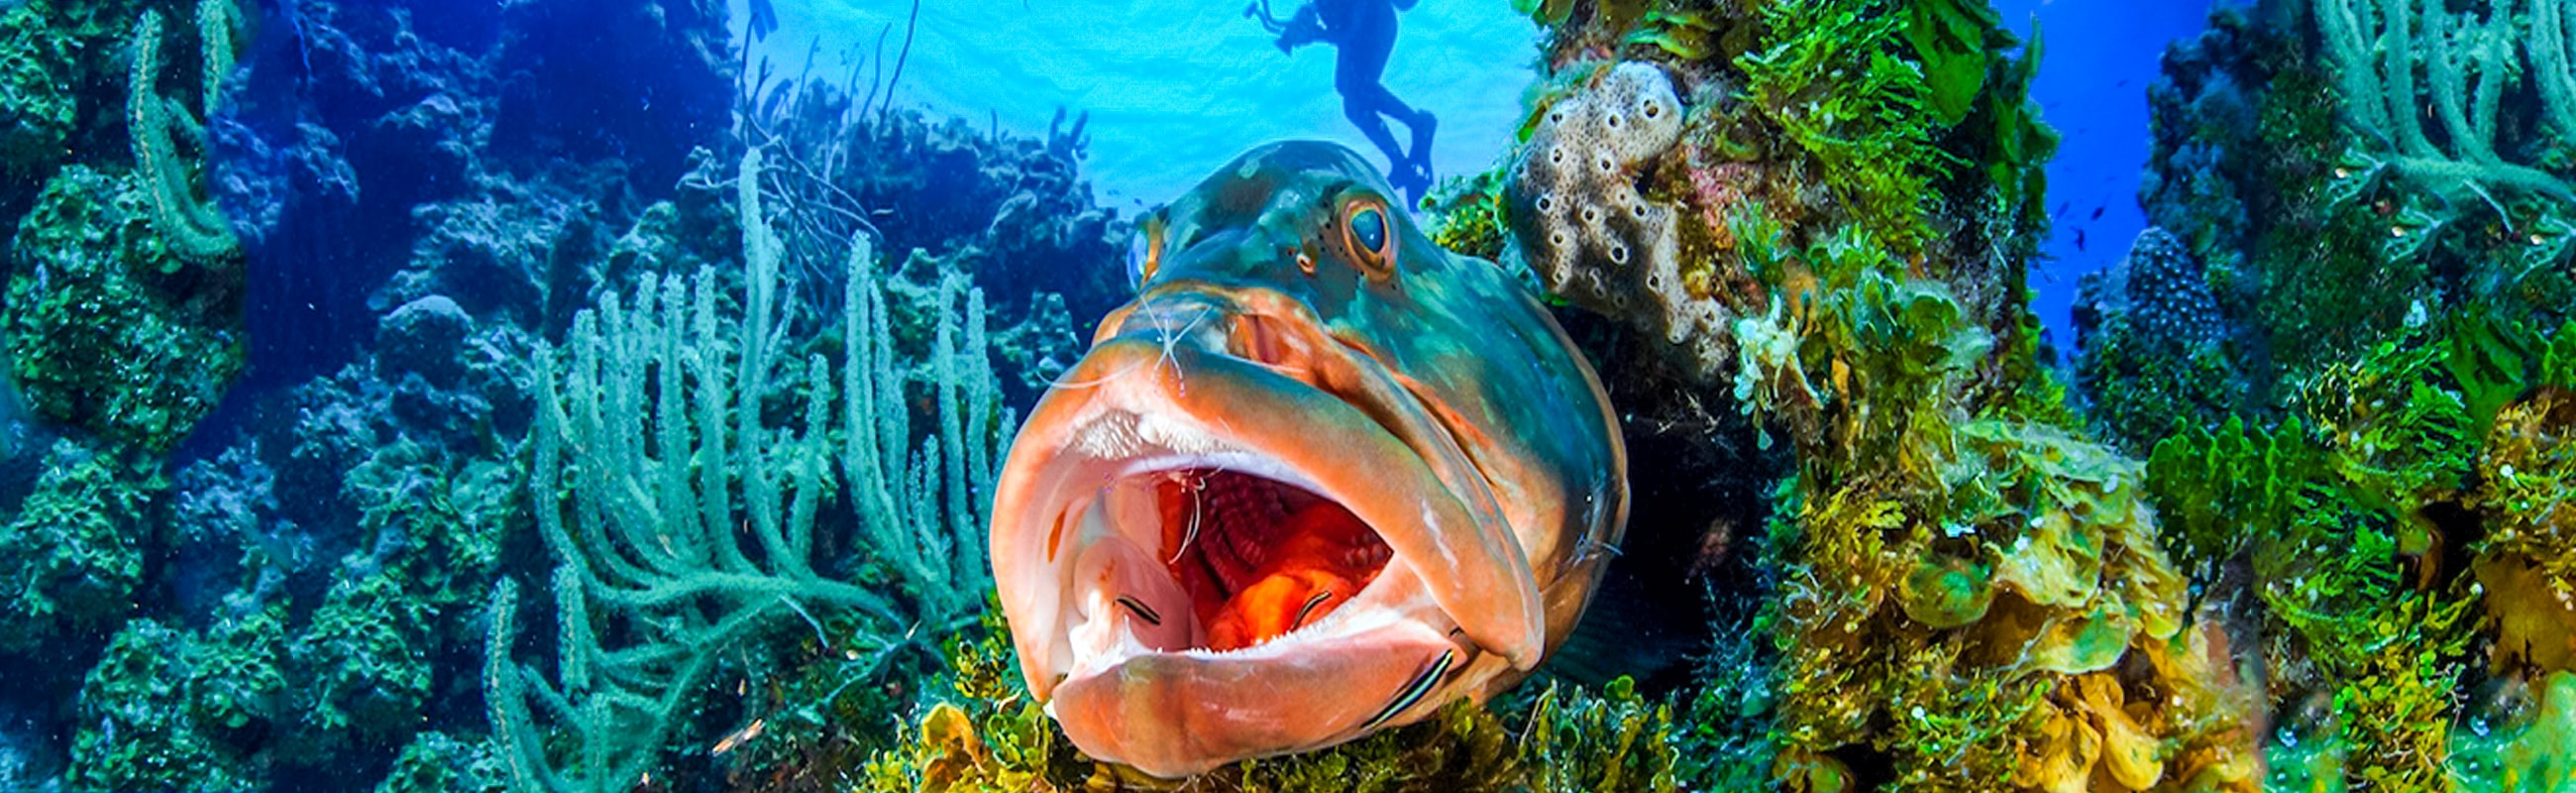 Cayman Brac waters are populated by abundant large and small marine life